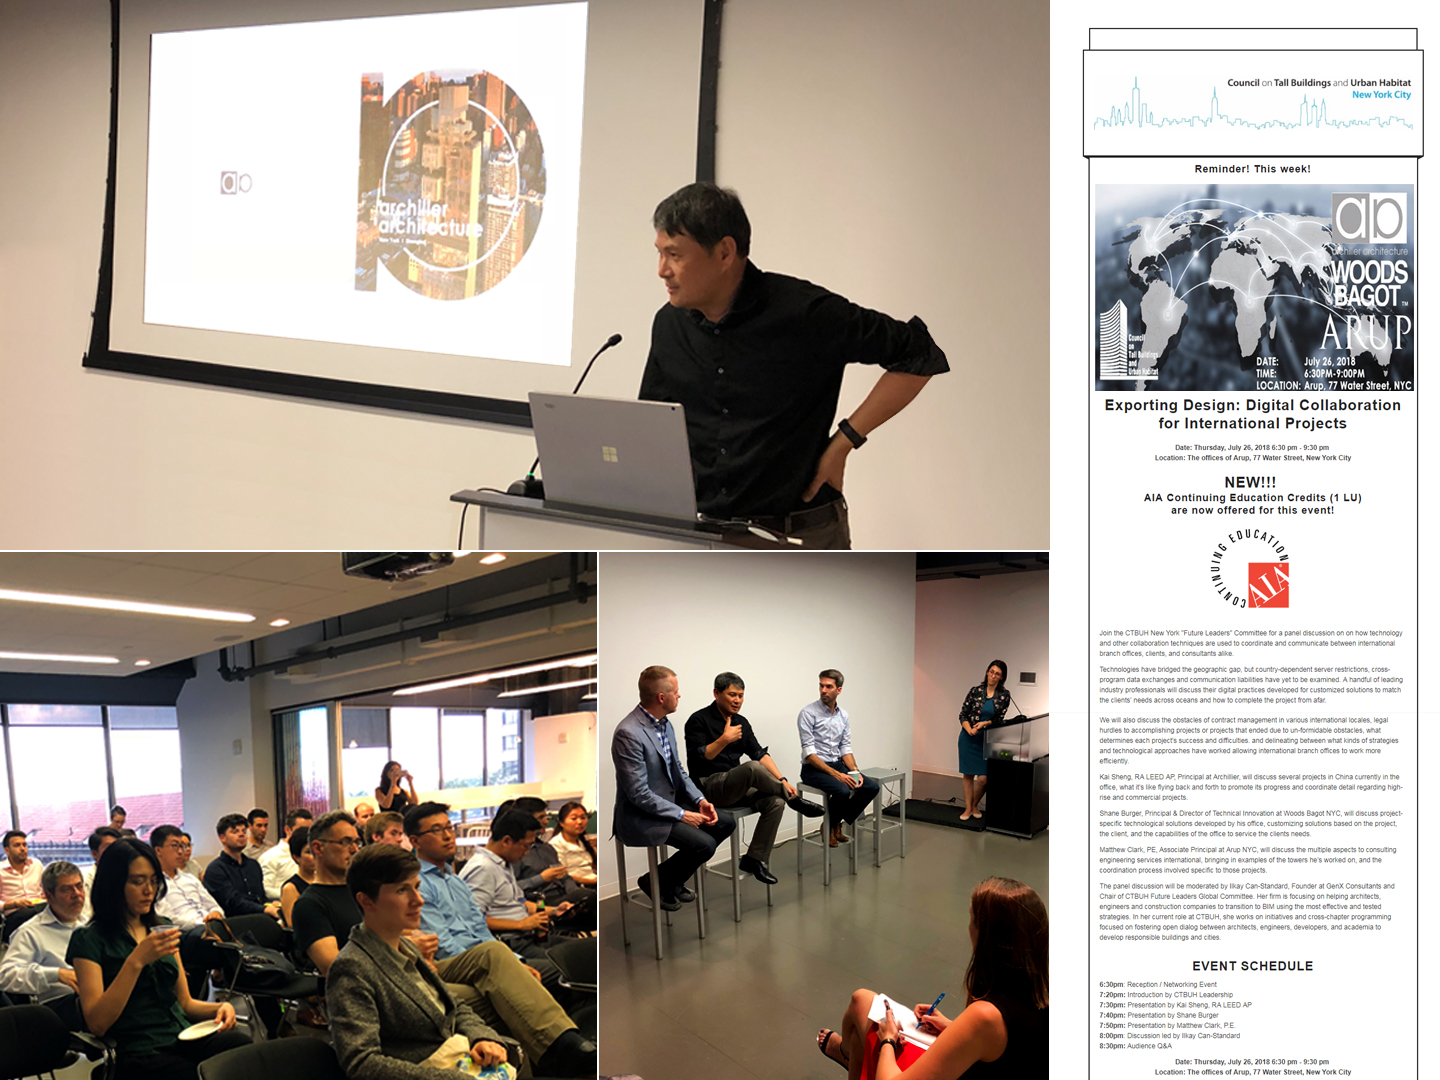 Archilier was invited to share case studies at CTBUH New York event